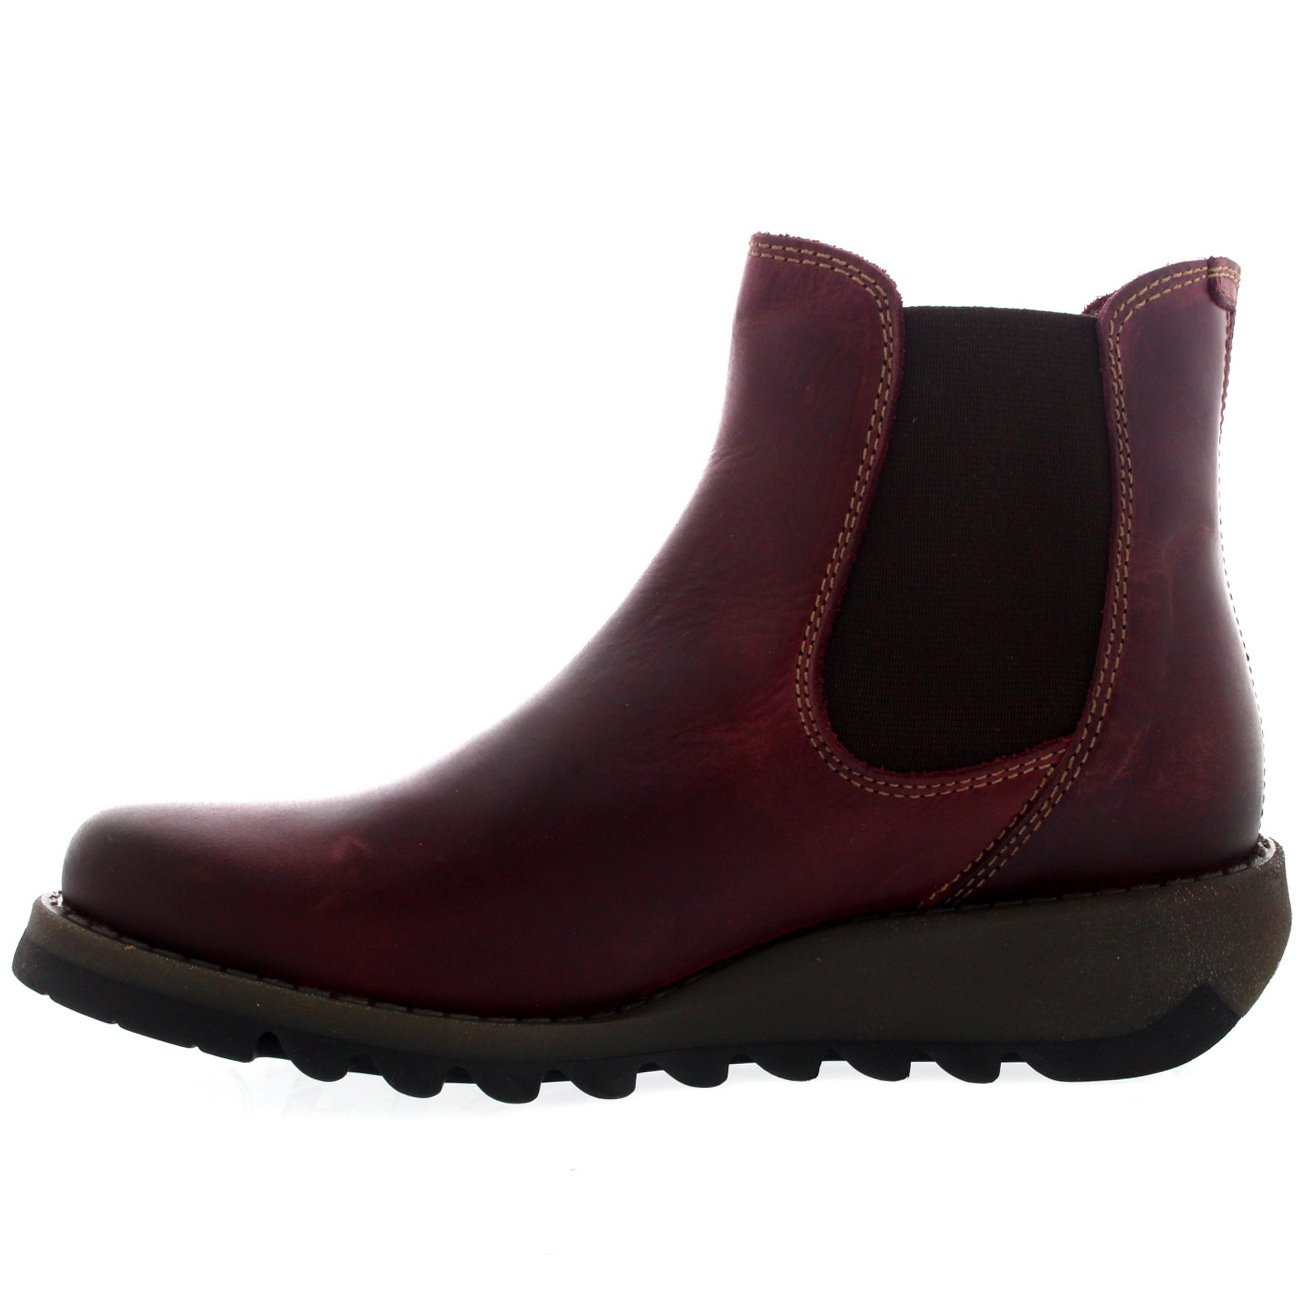 FLY London Salv Purple Leather Womens Ankle Boots 38